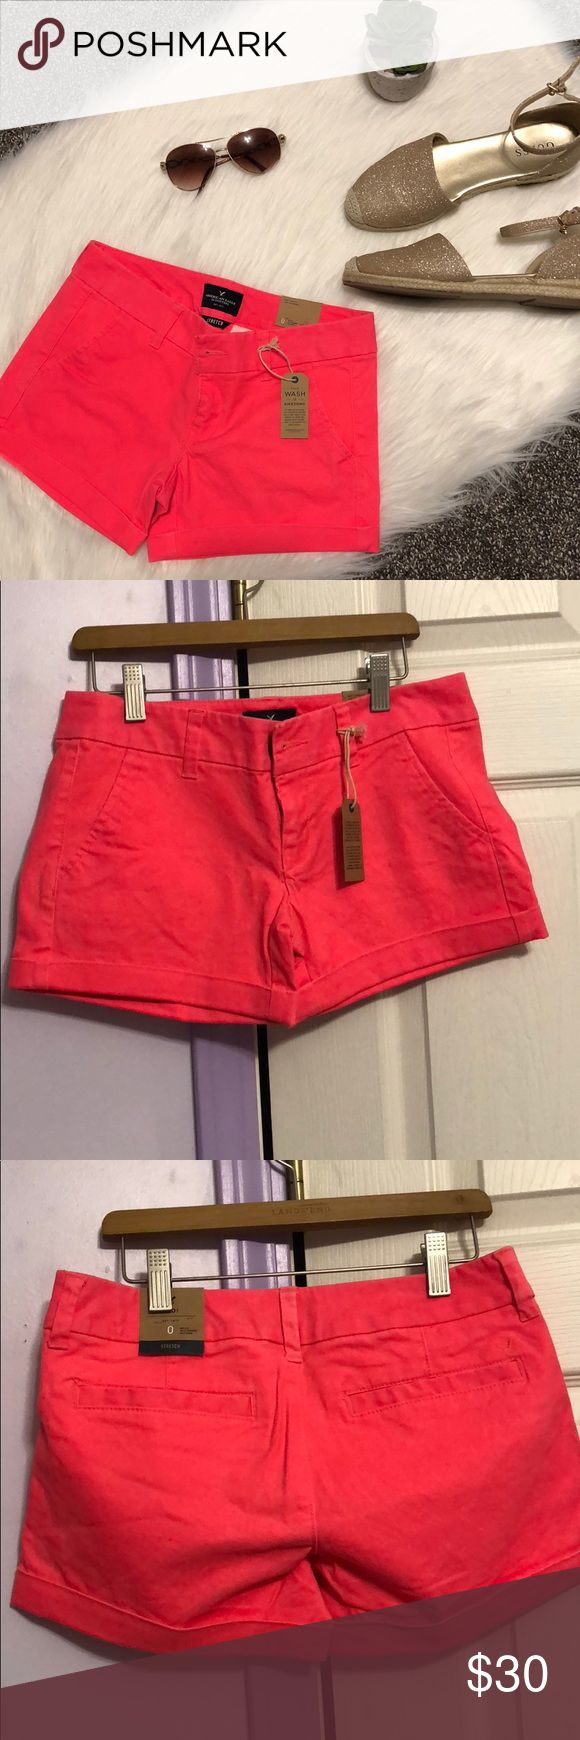 AE neon shorts NWT midi length, stretchy, open to reasonable offers, no trades🎀 bundle for discount American Eagle Outfitters Shorts